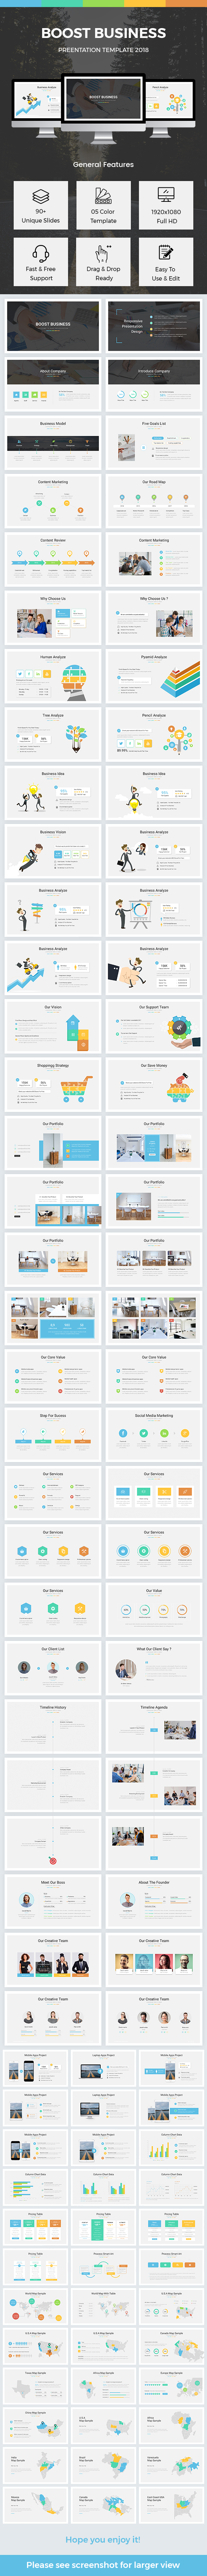 Boost Business Powerpoint Template 2018 - Business PowerPoint Templates